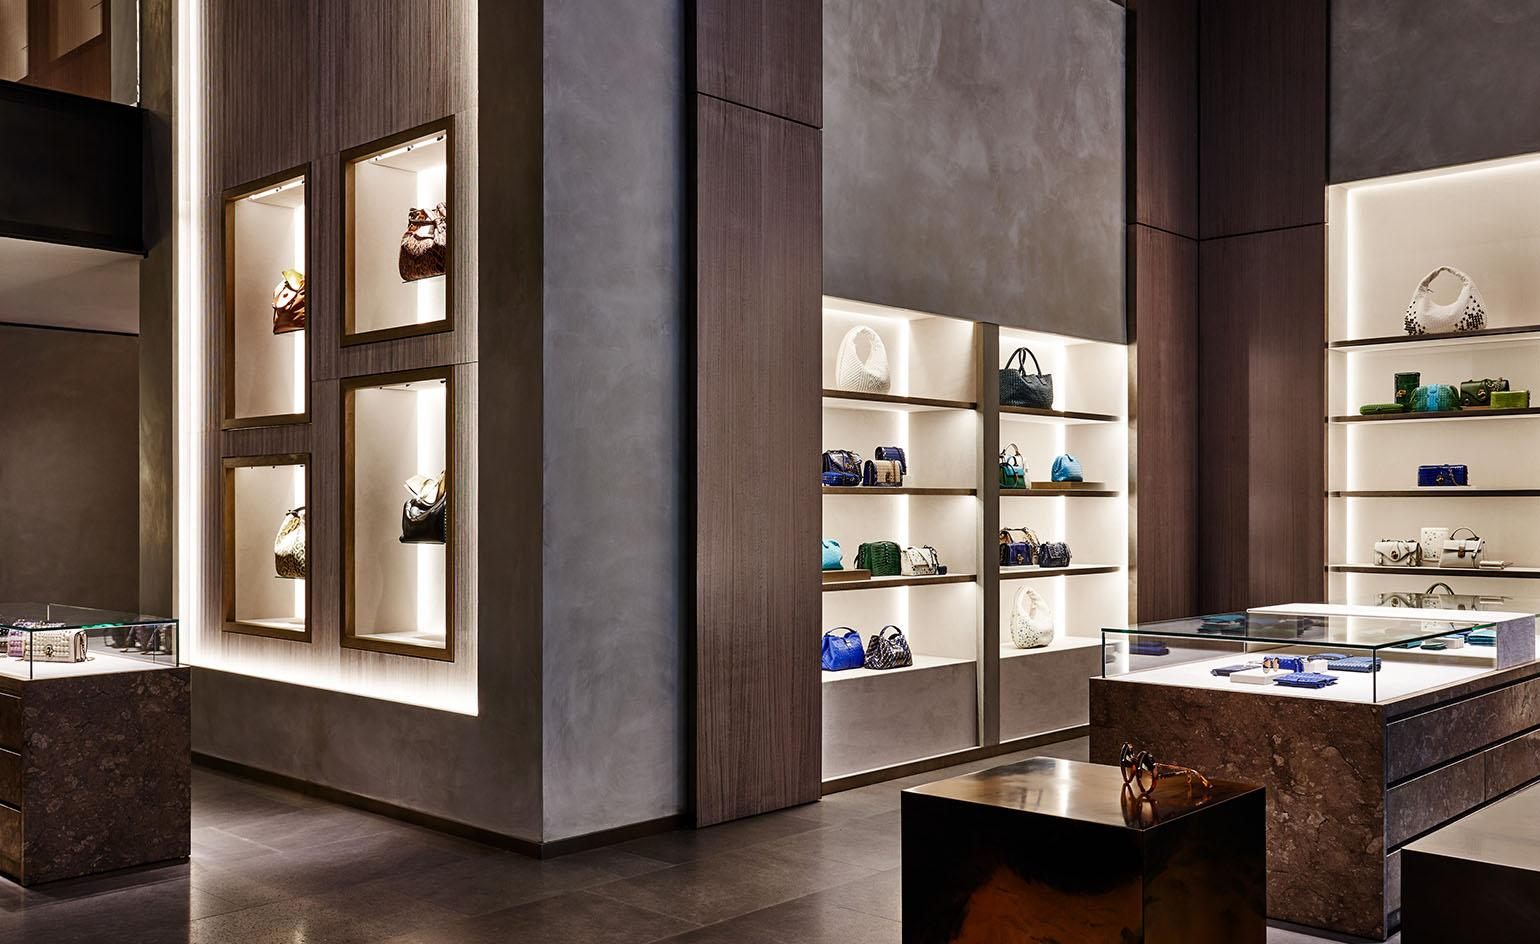 Bottega Veneta Madison Avenue